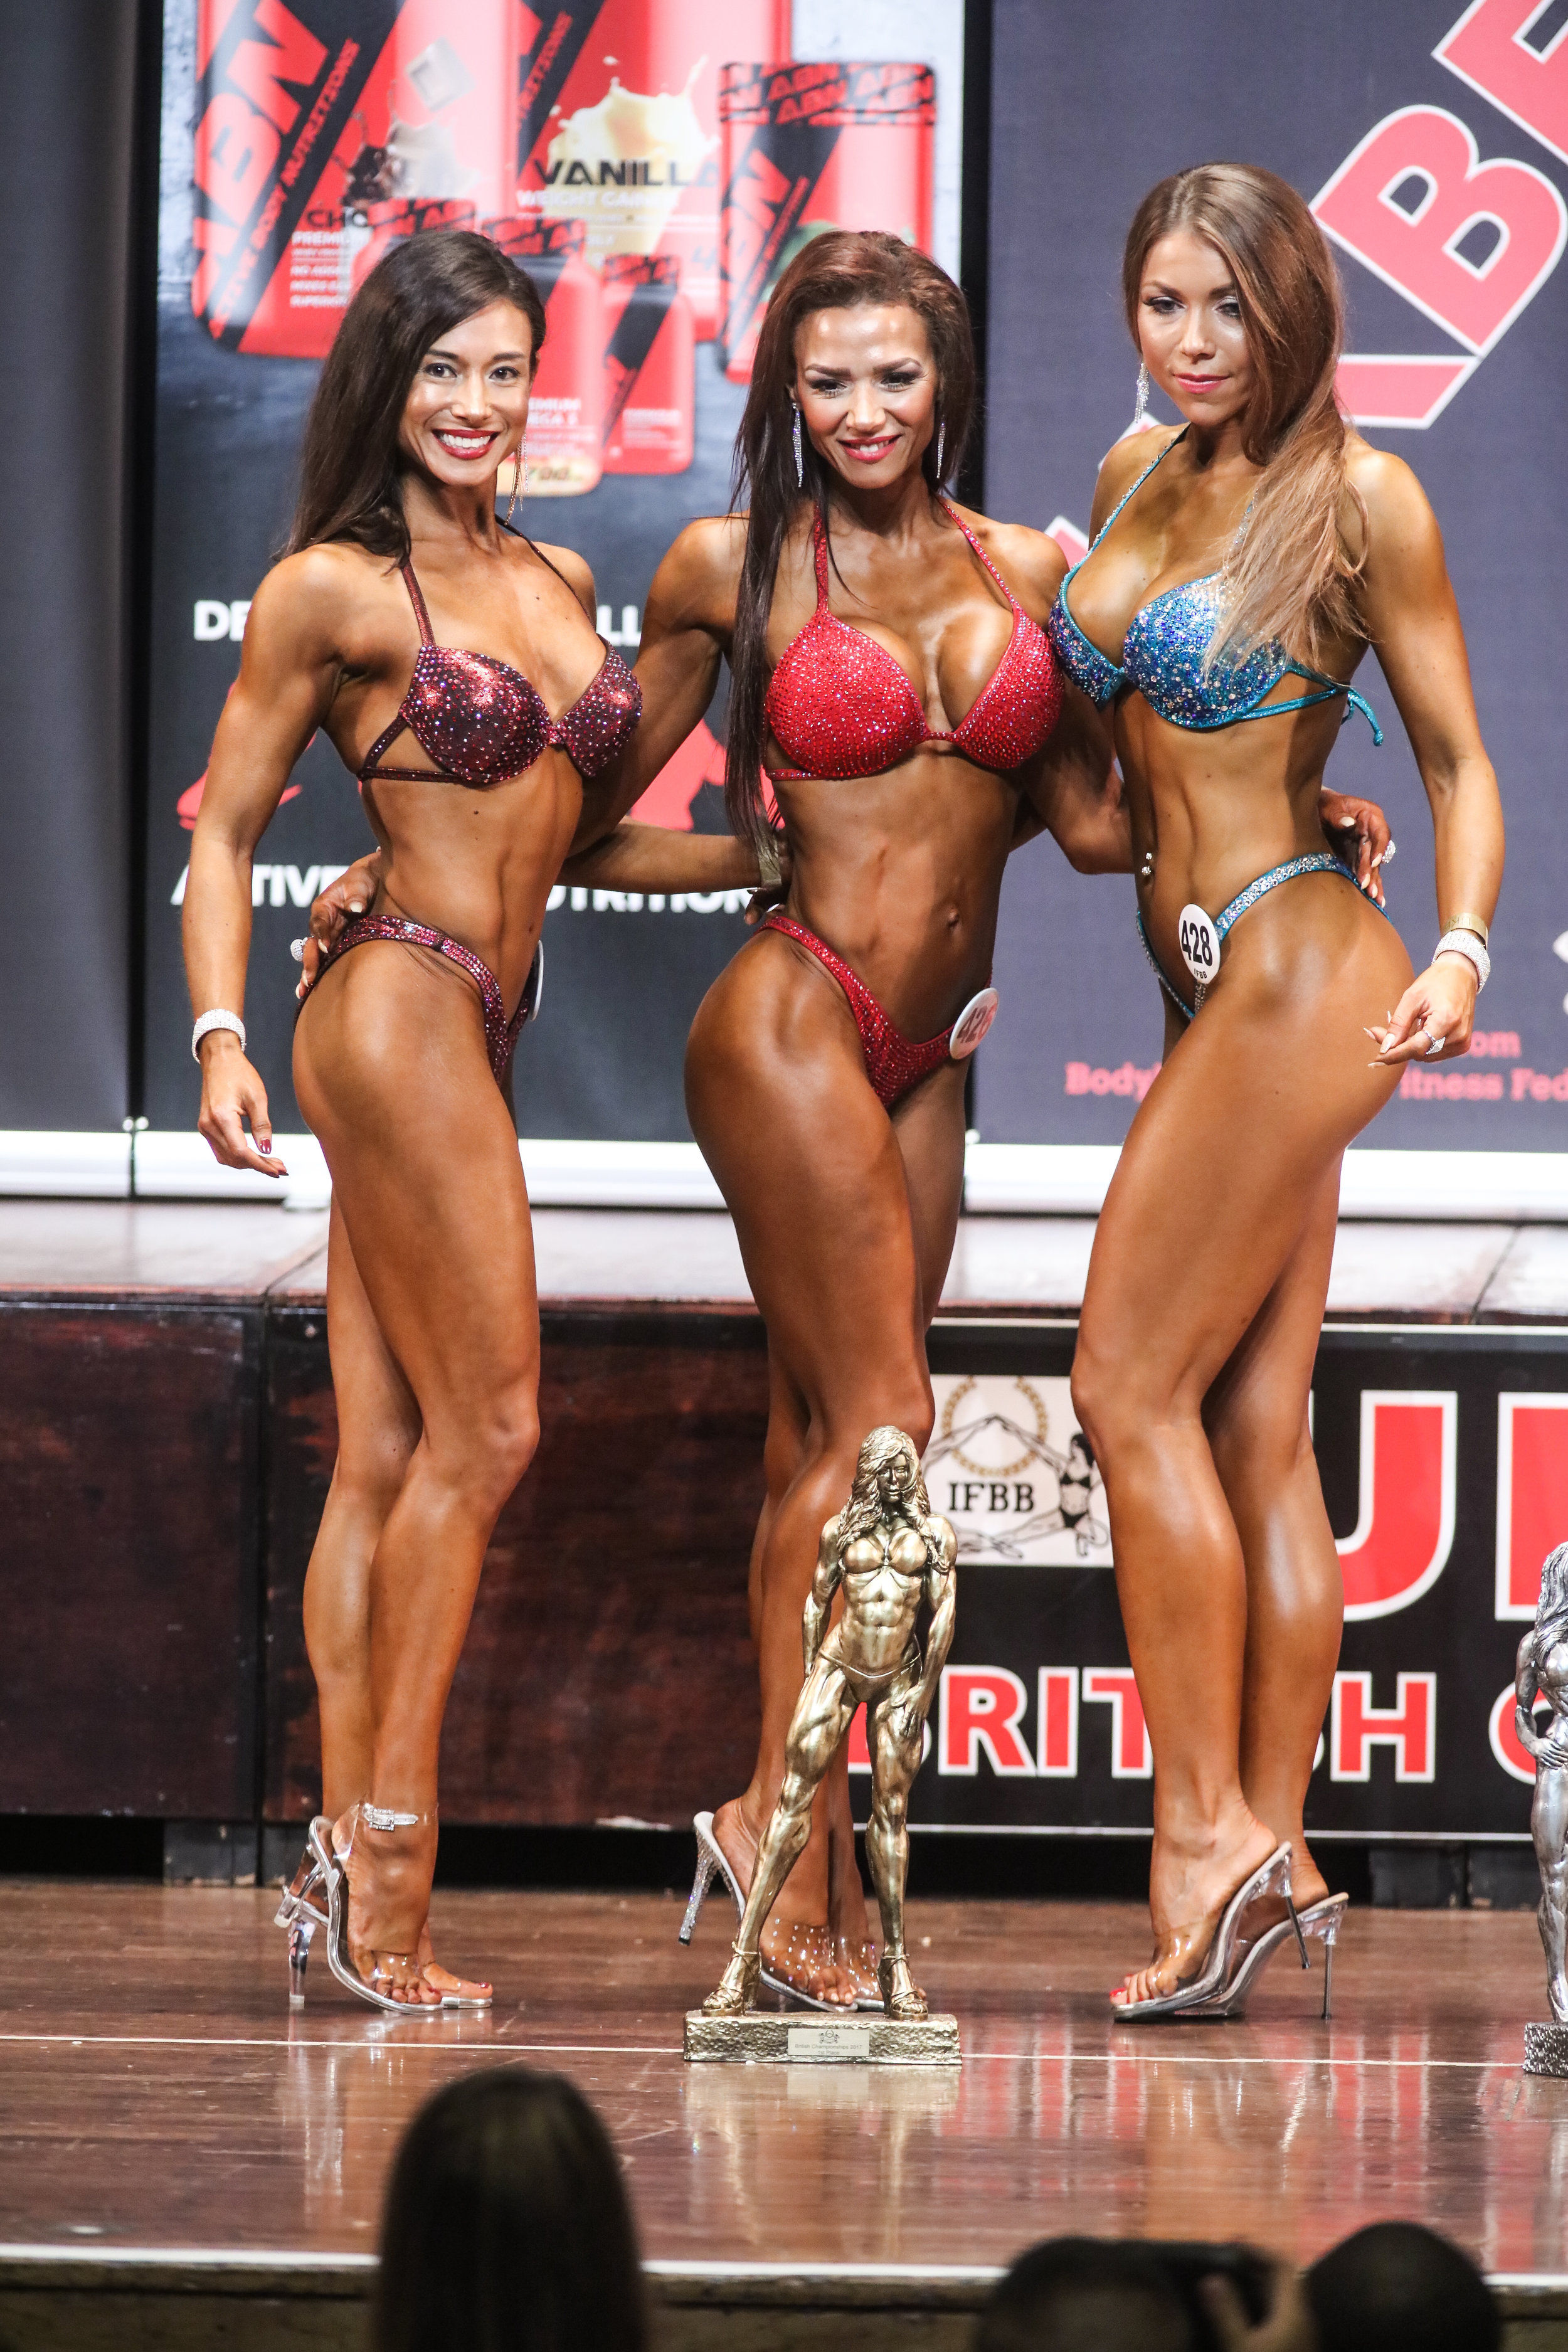 The top three in masters bikini fitness at last year's British Championships line up for photos. PHOTO: Christopher Bailey